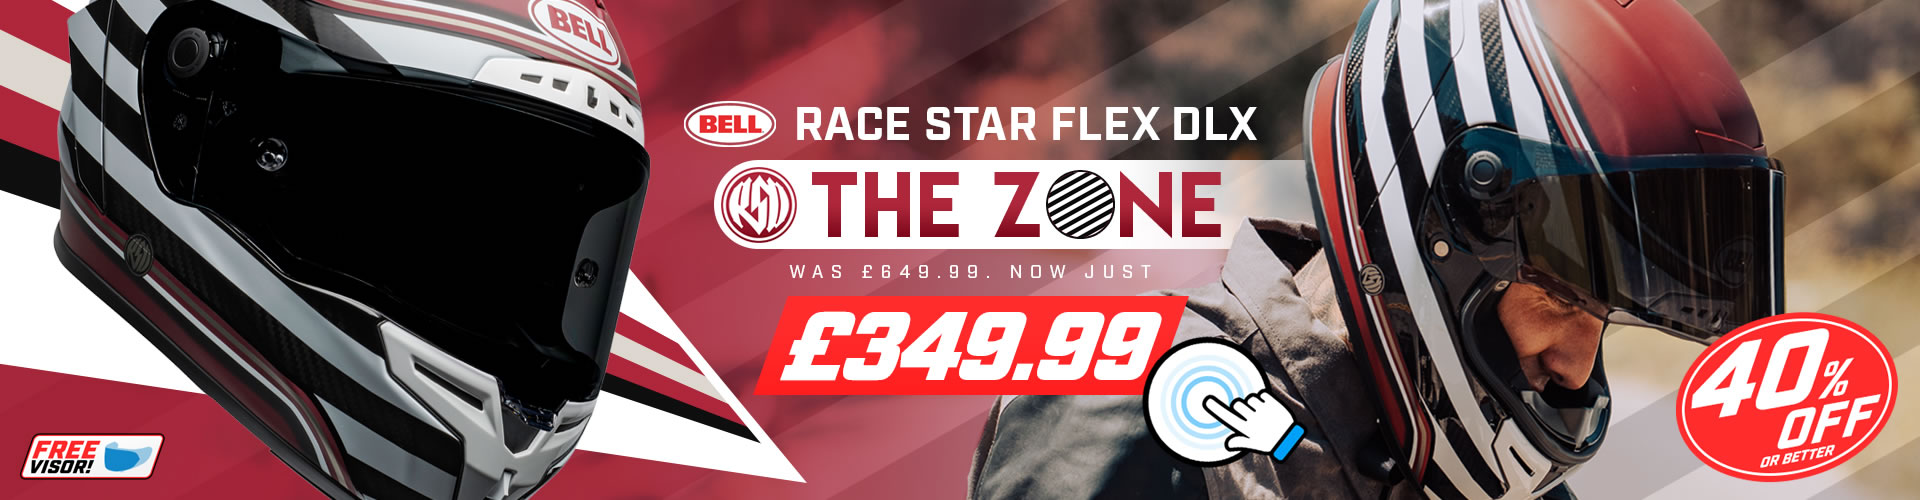 Bell Race Star Flex DLX - The Zone on SALE